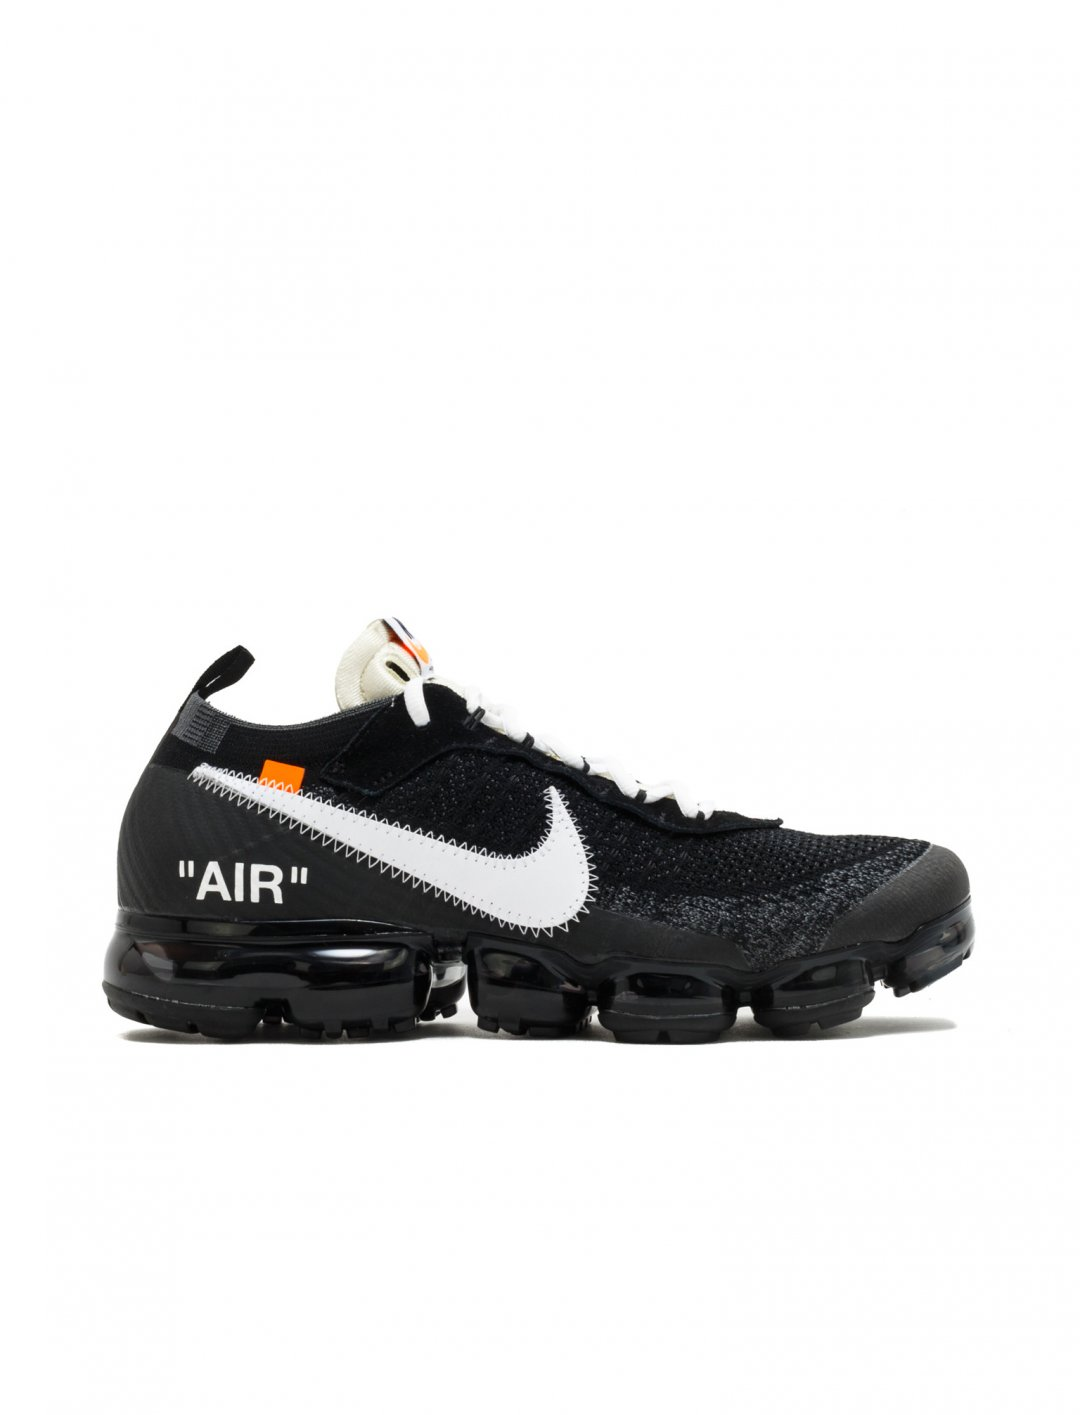 "Lotto Boyzz' Nike Air Vapormax {""id"":12,""product_section_id"":1,""name"":""Shoes"",""order"":12} Nike x Off White"